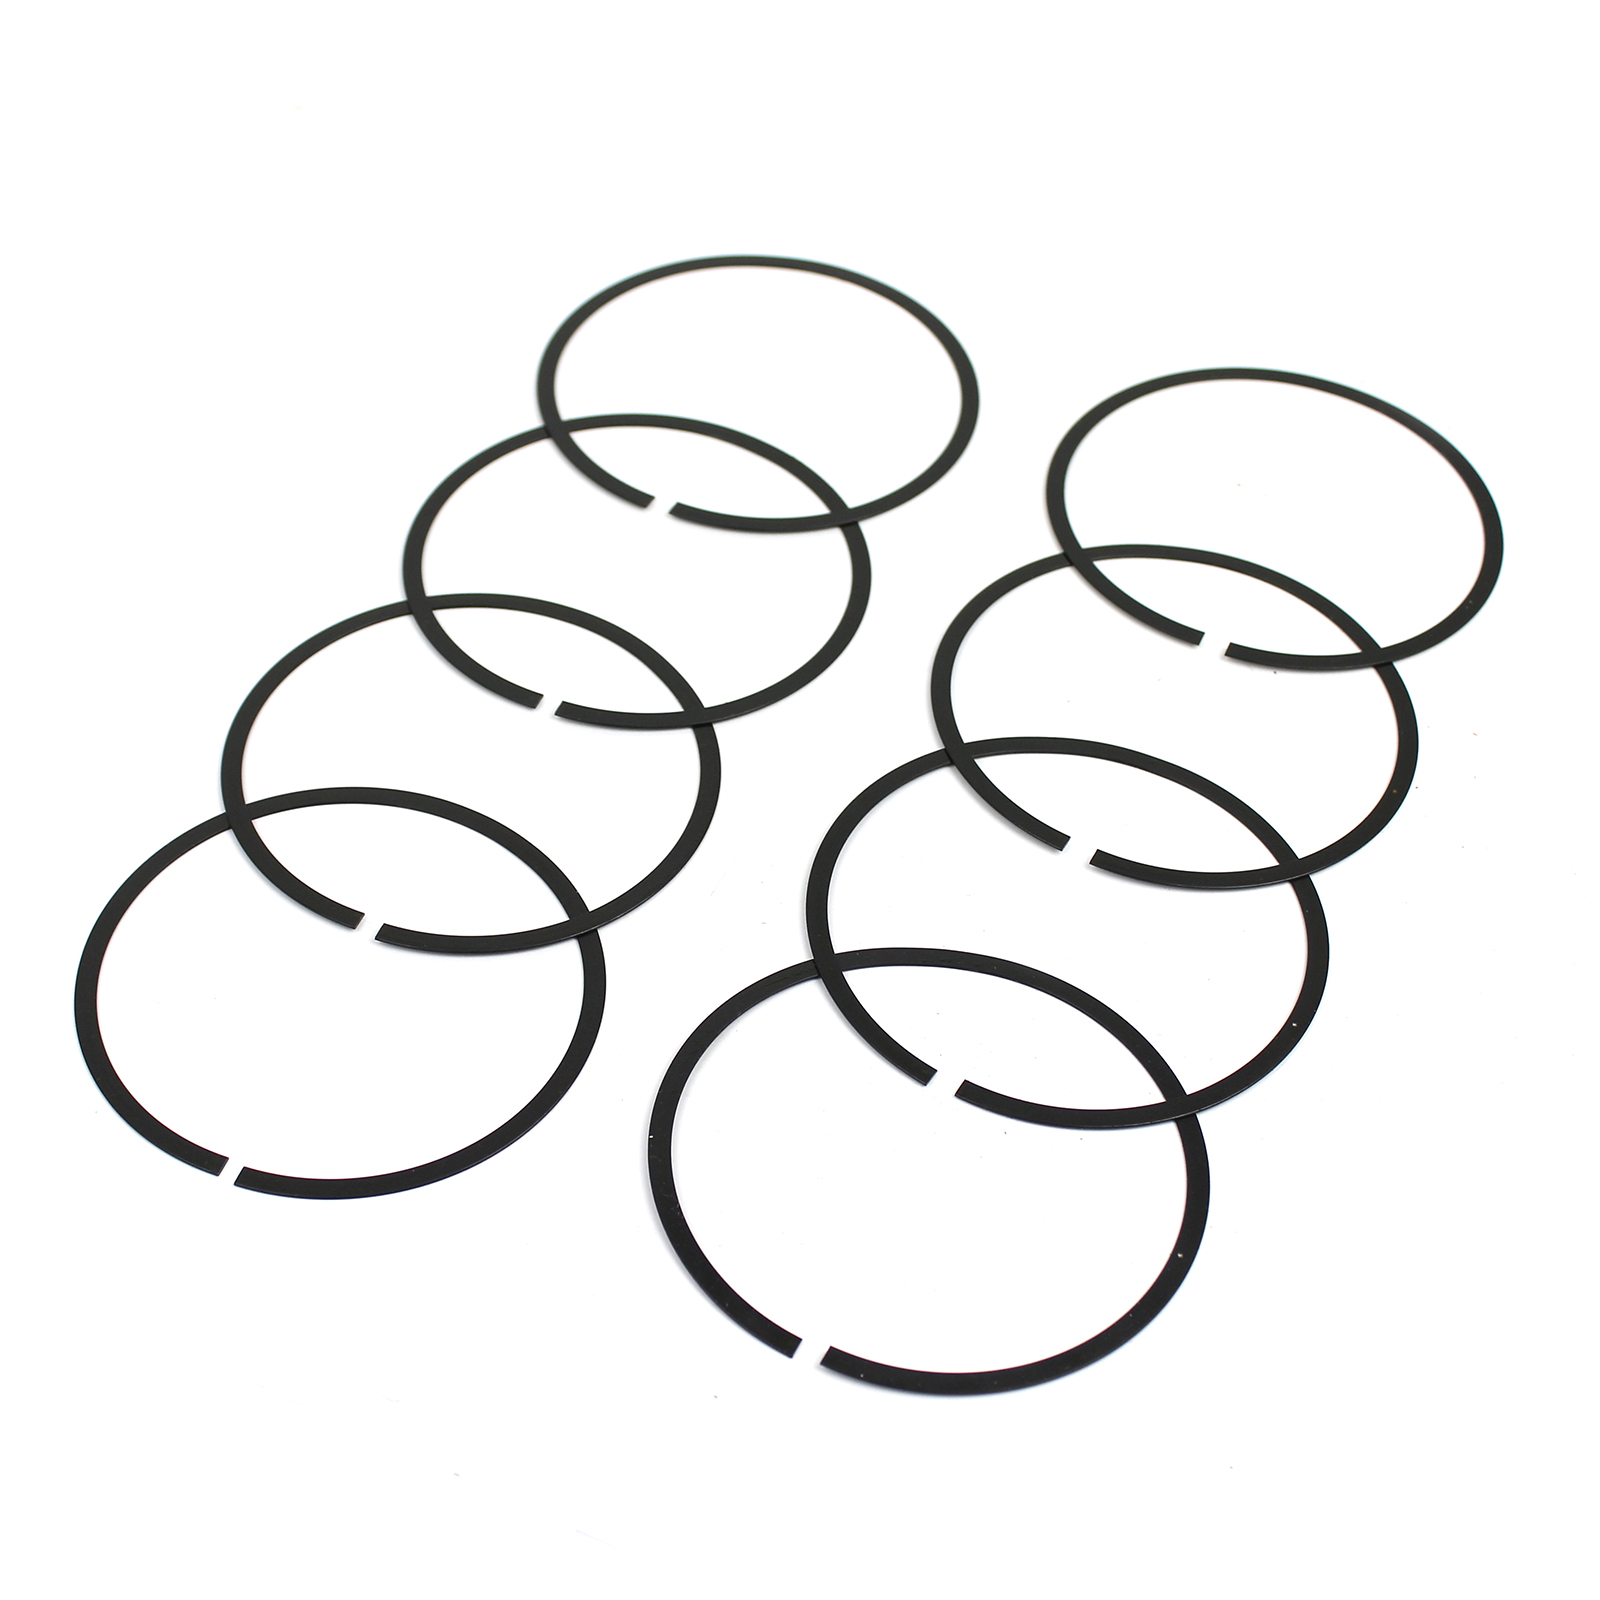 "4.125"" Bore Piston Oil Ring Rail Spacer Support (0.030"" Thick) Set of 8"